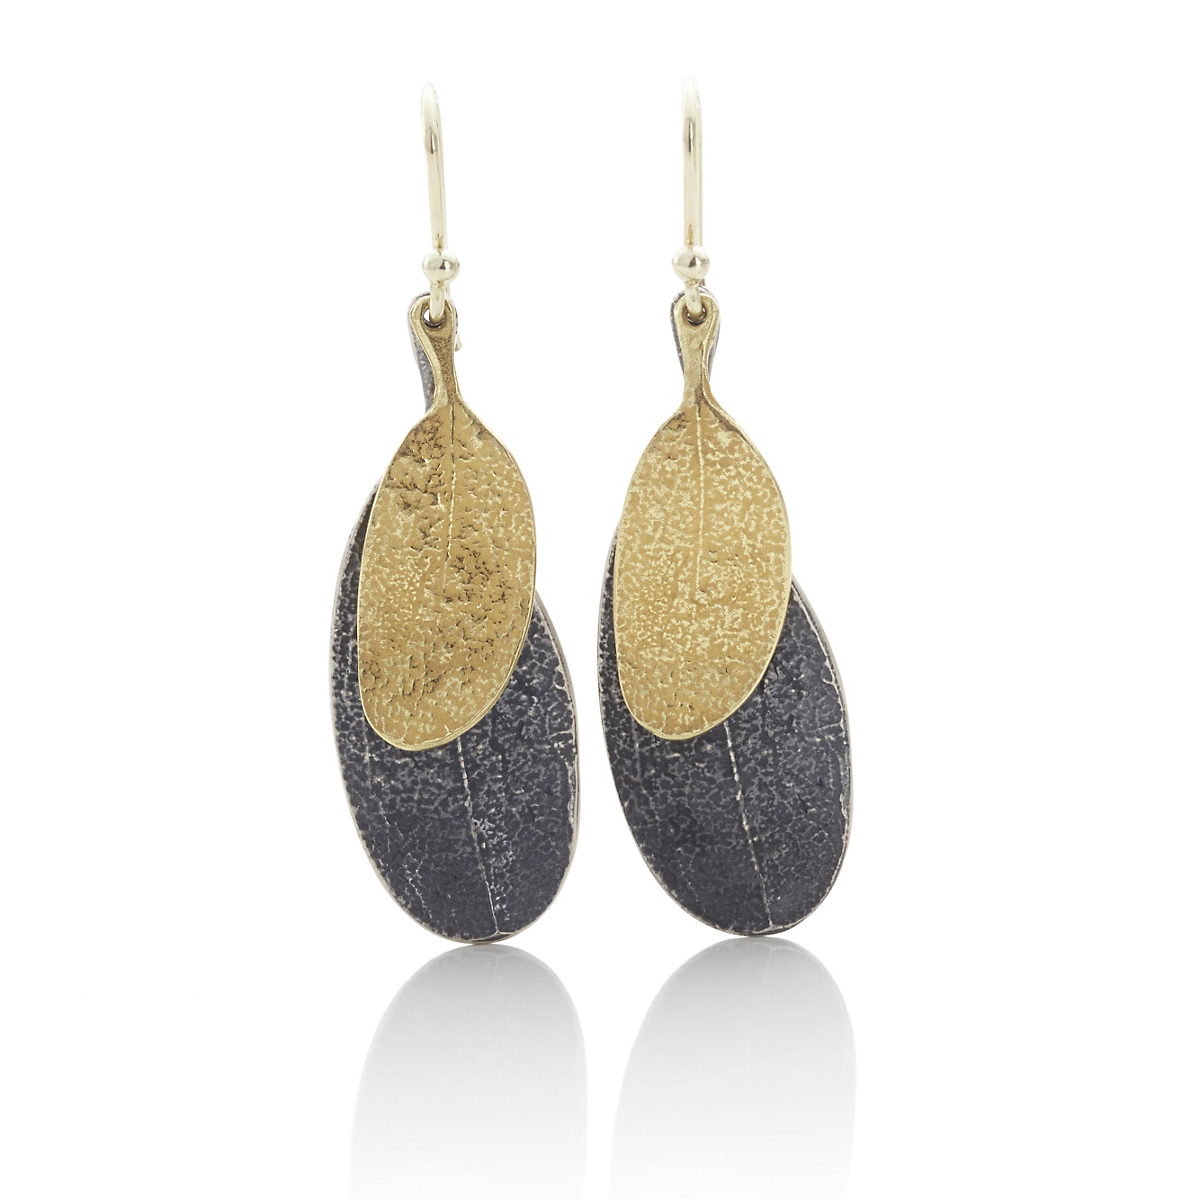 John Iversen Oxidized Silver & Gold Double Leaf Earrings